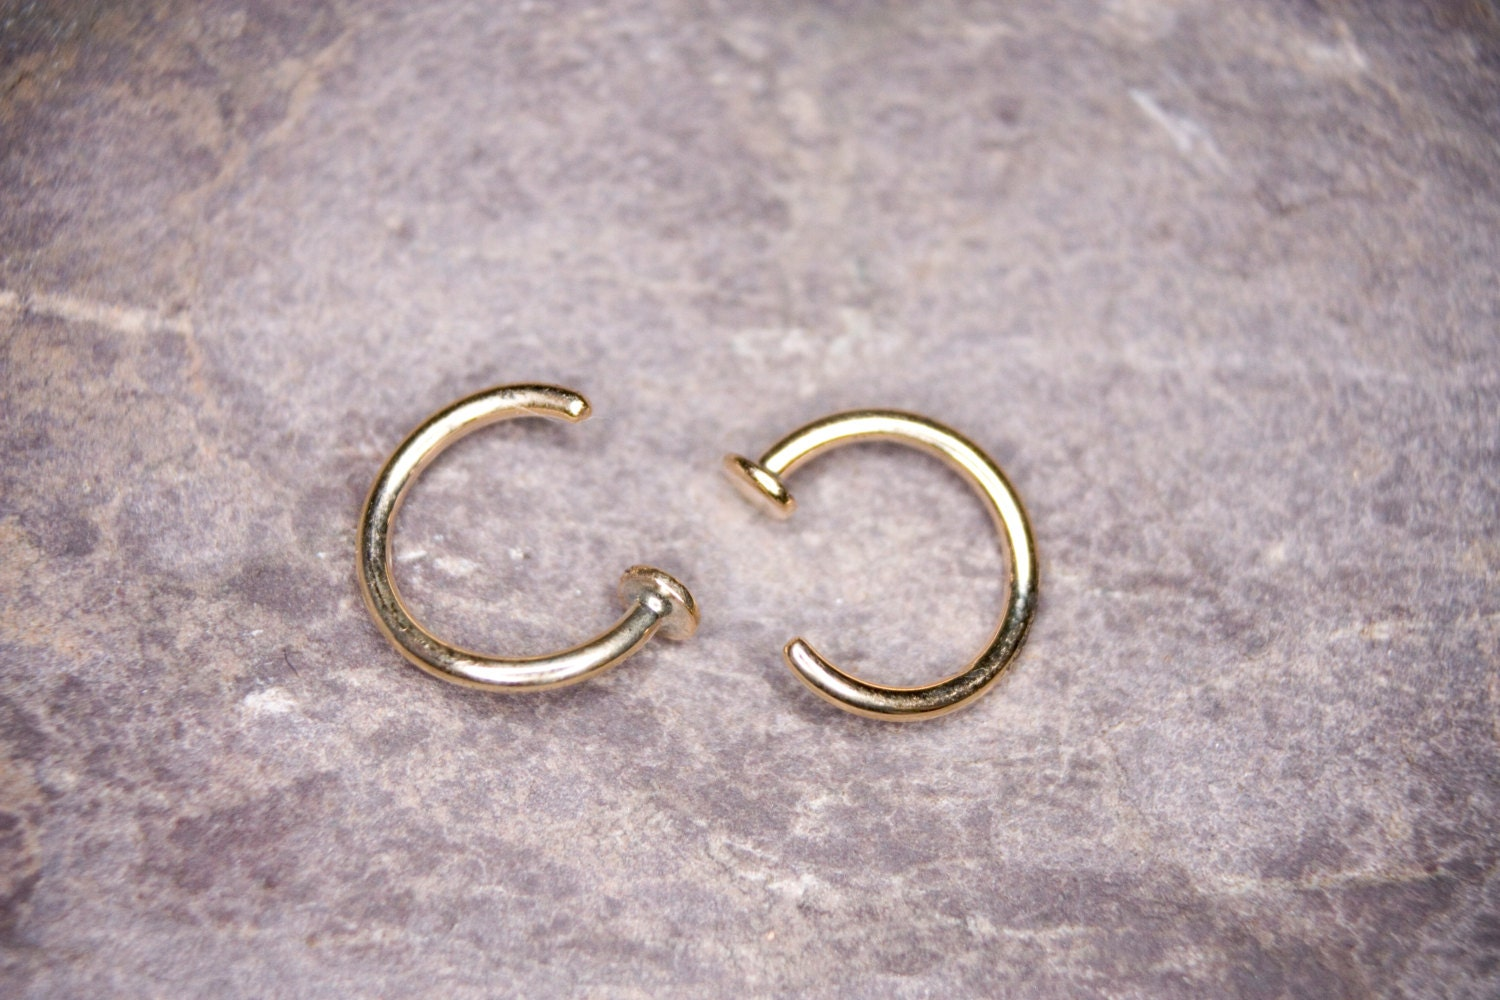 1mm gold nose ring handmade 9ct gold nose piercing